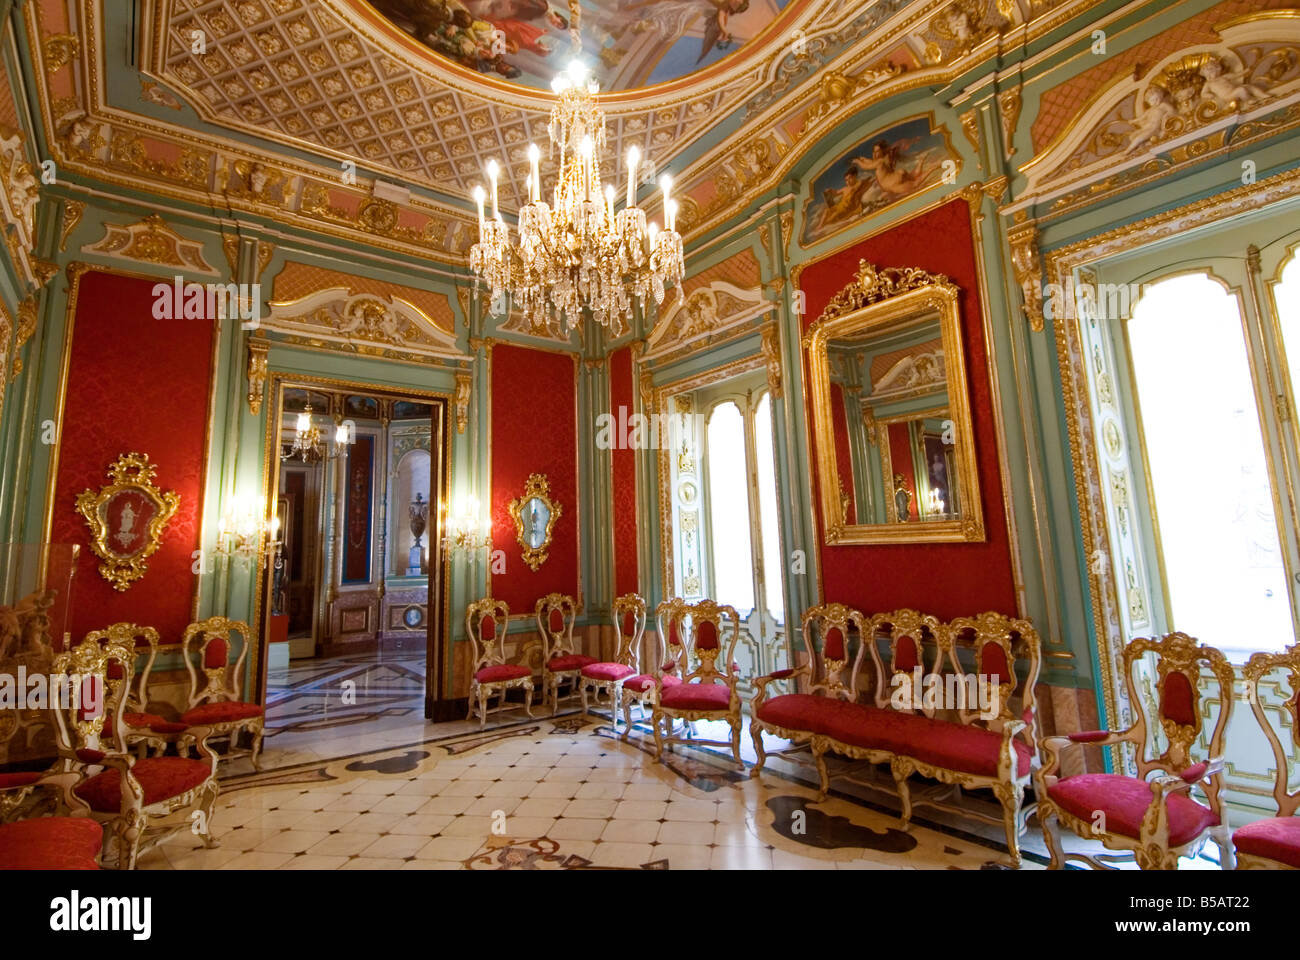 The Red Hall Sala Roja inside the Palacio del Marques de Dos Aguas which houses the ceramic museum Valencia. Spain - Stock Image